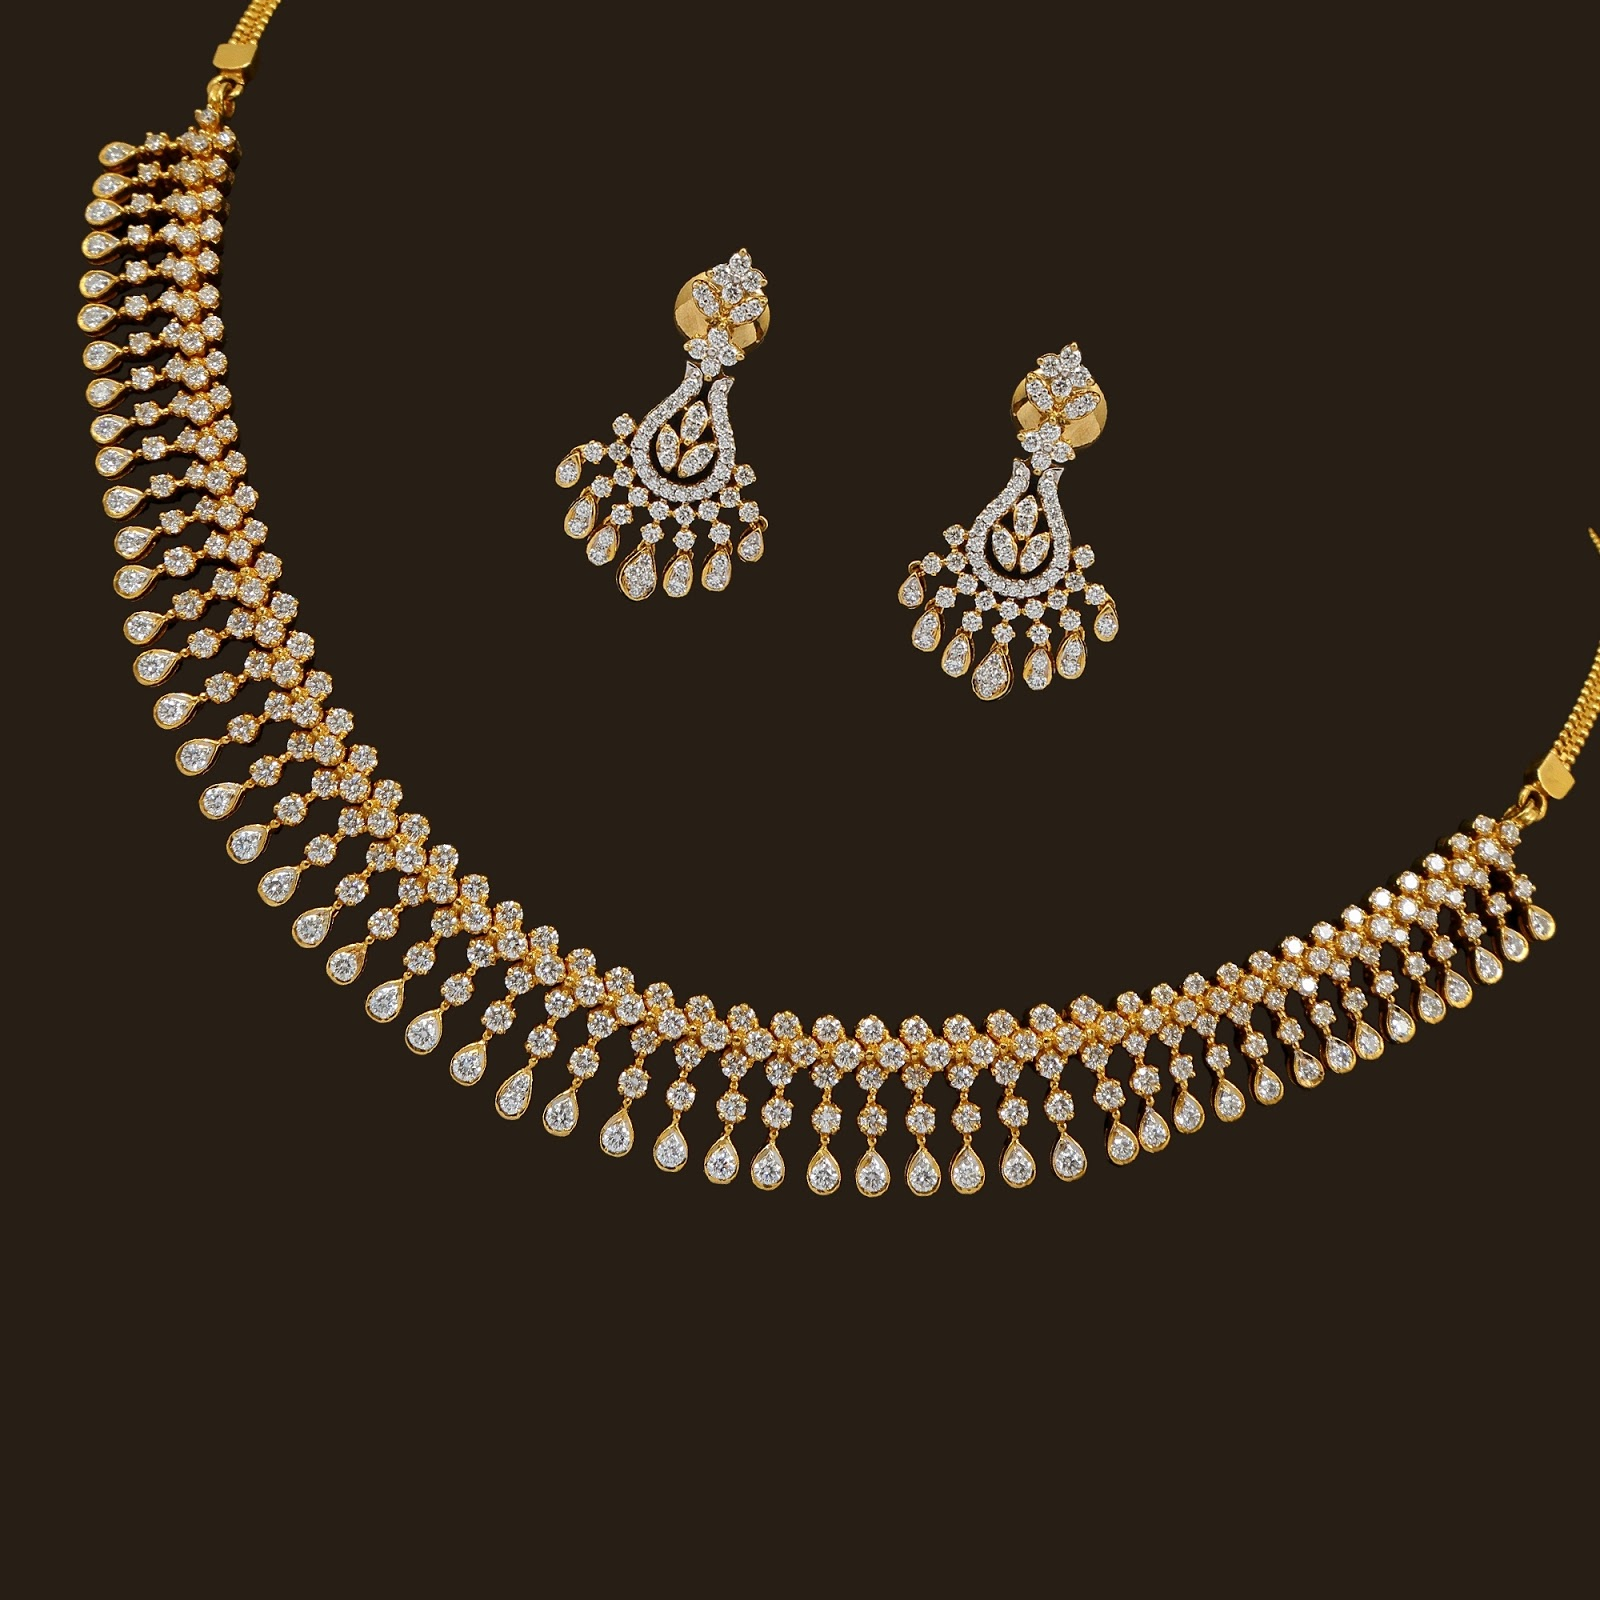 sale news and shopping details vummidi diamond necklace sets